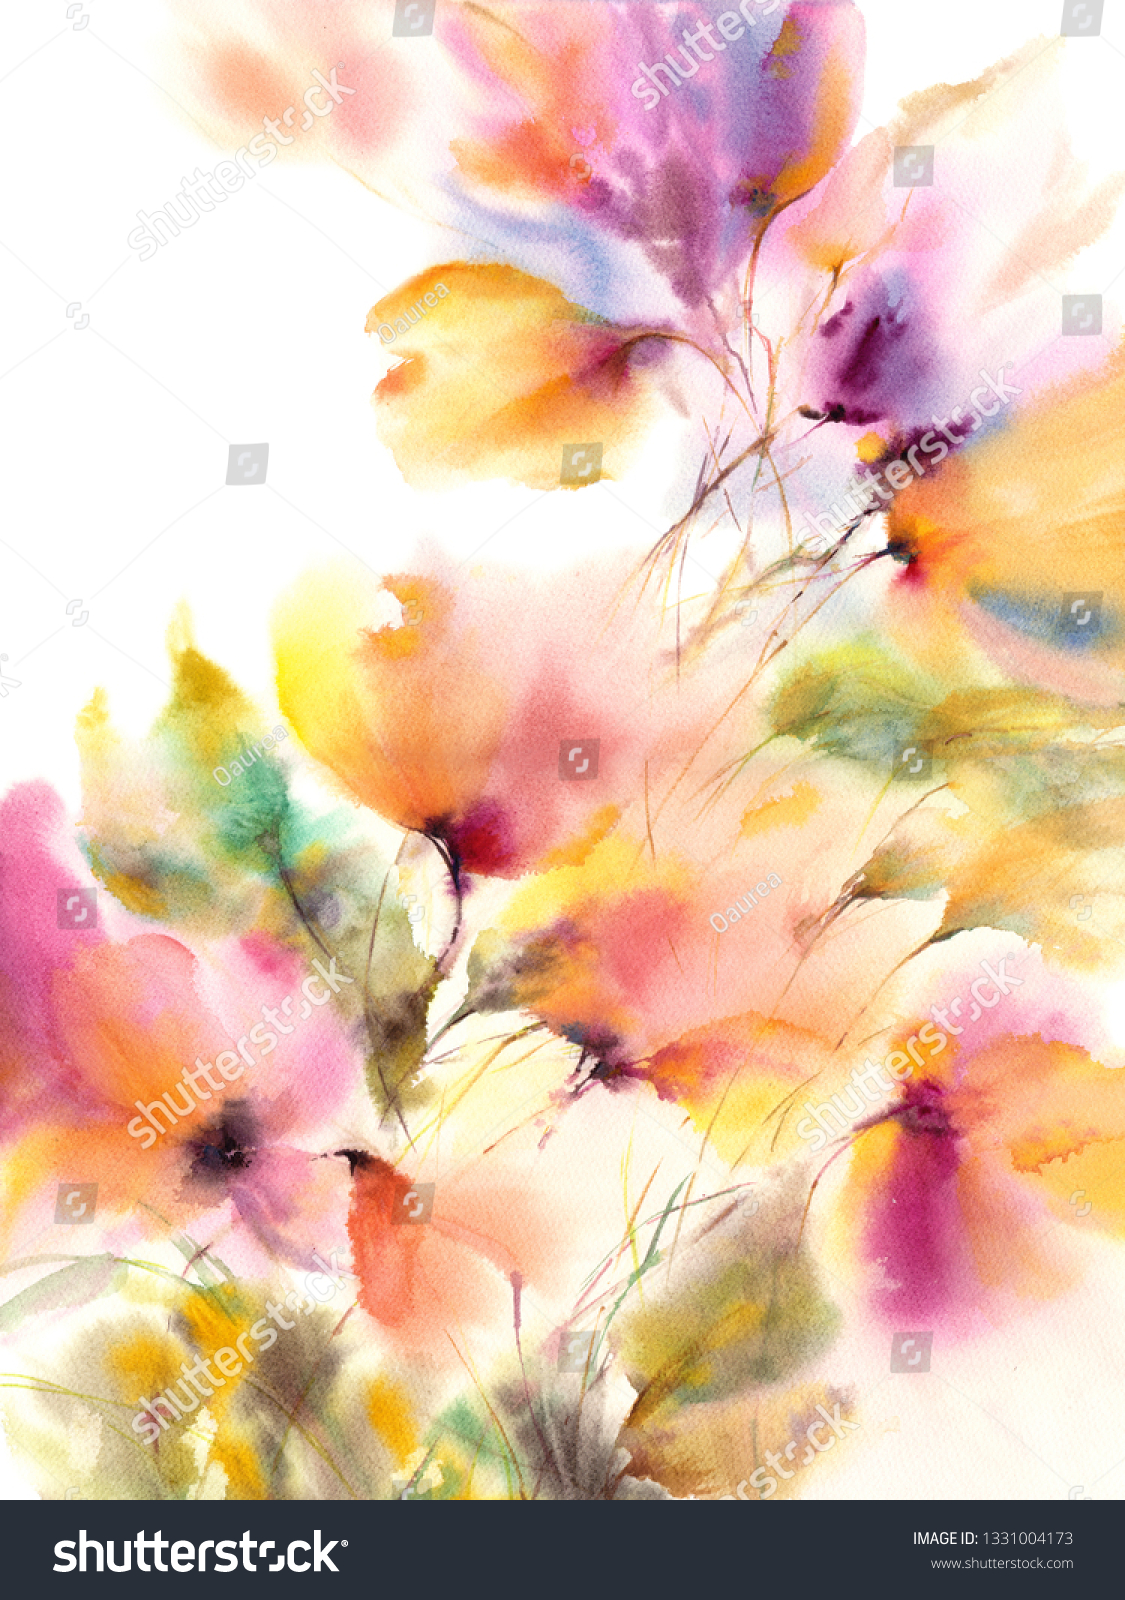 Floral Background Watercolor Floral Painting Delocate Stock